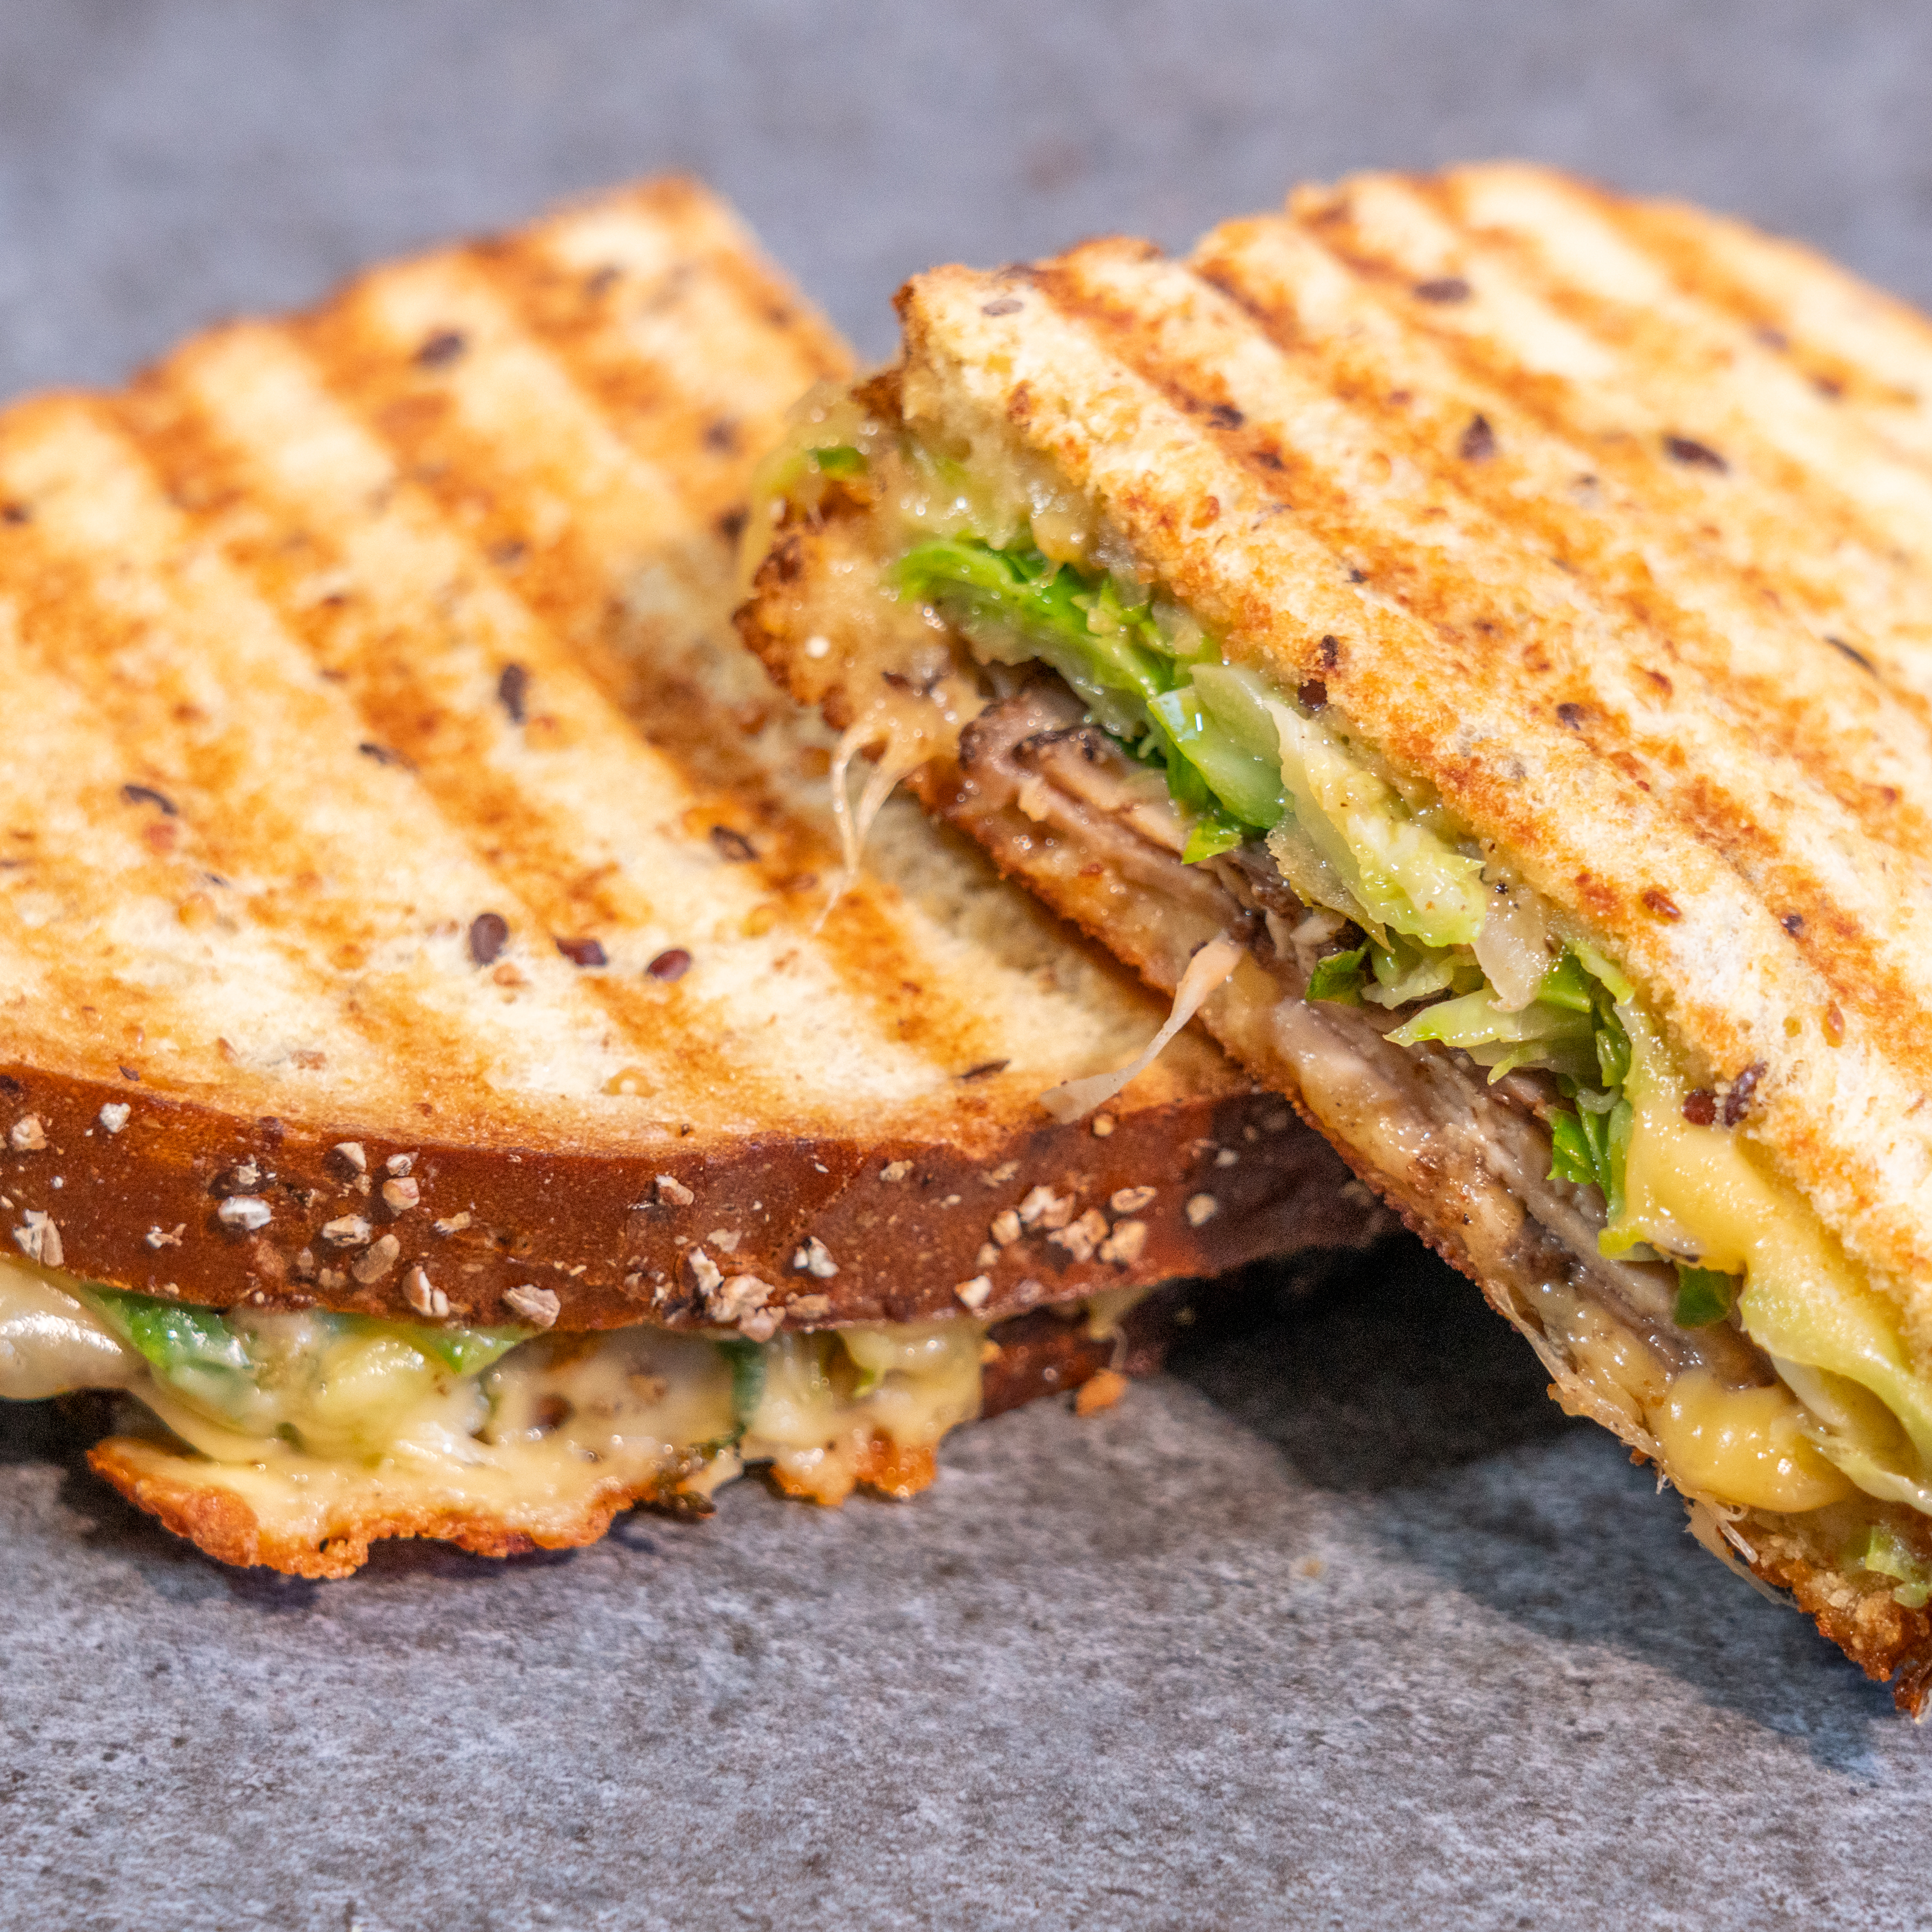 Pastrami & Brussels Sprouts Panini